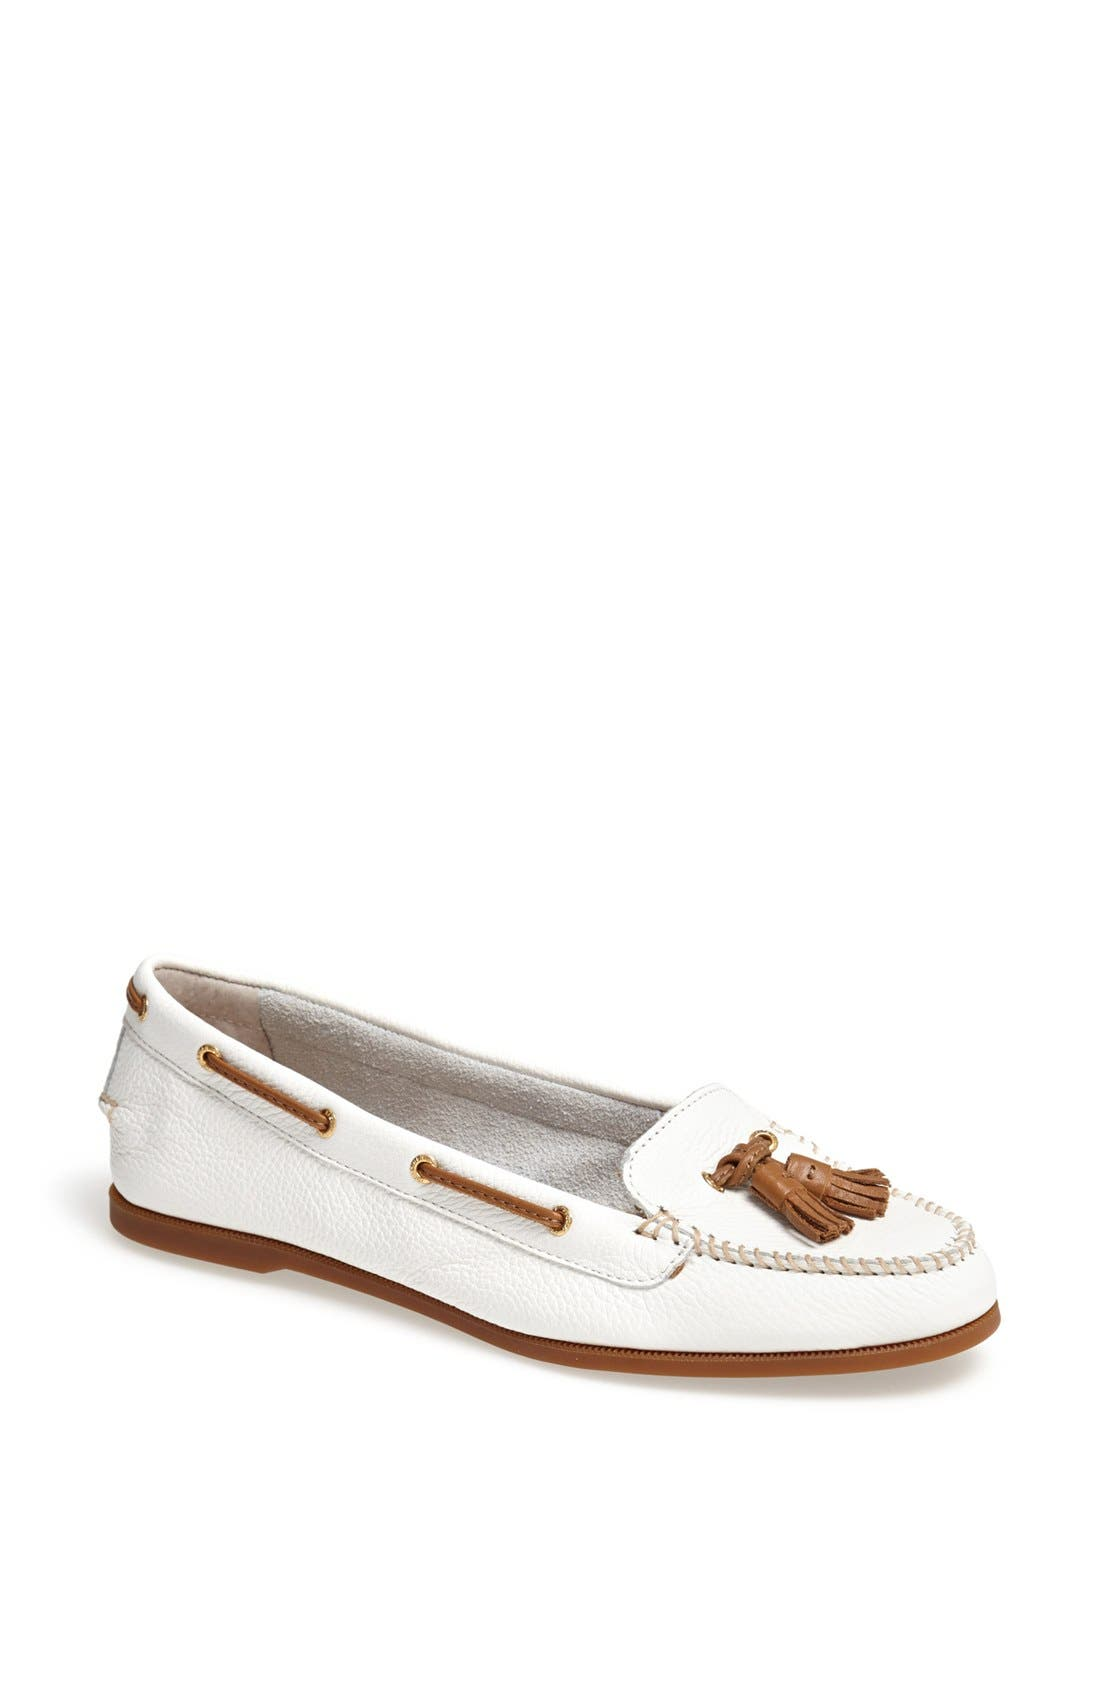 Alternate Image 1 Selected - Sperry Top-Sider® 'Sabrina' Flat